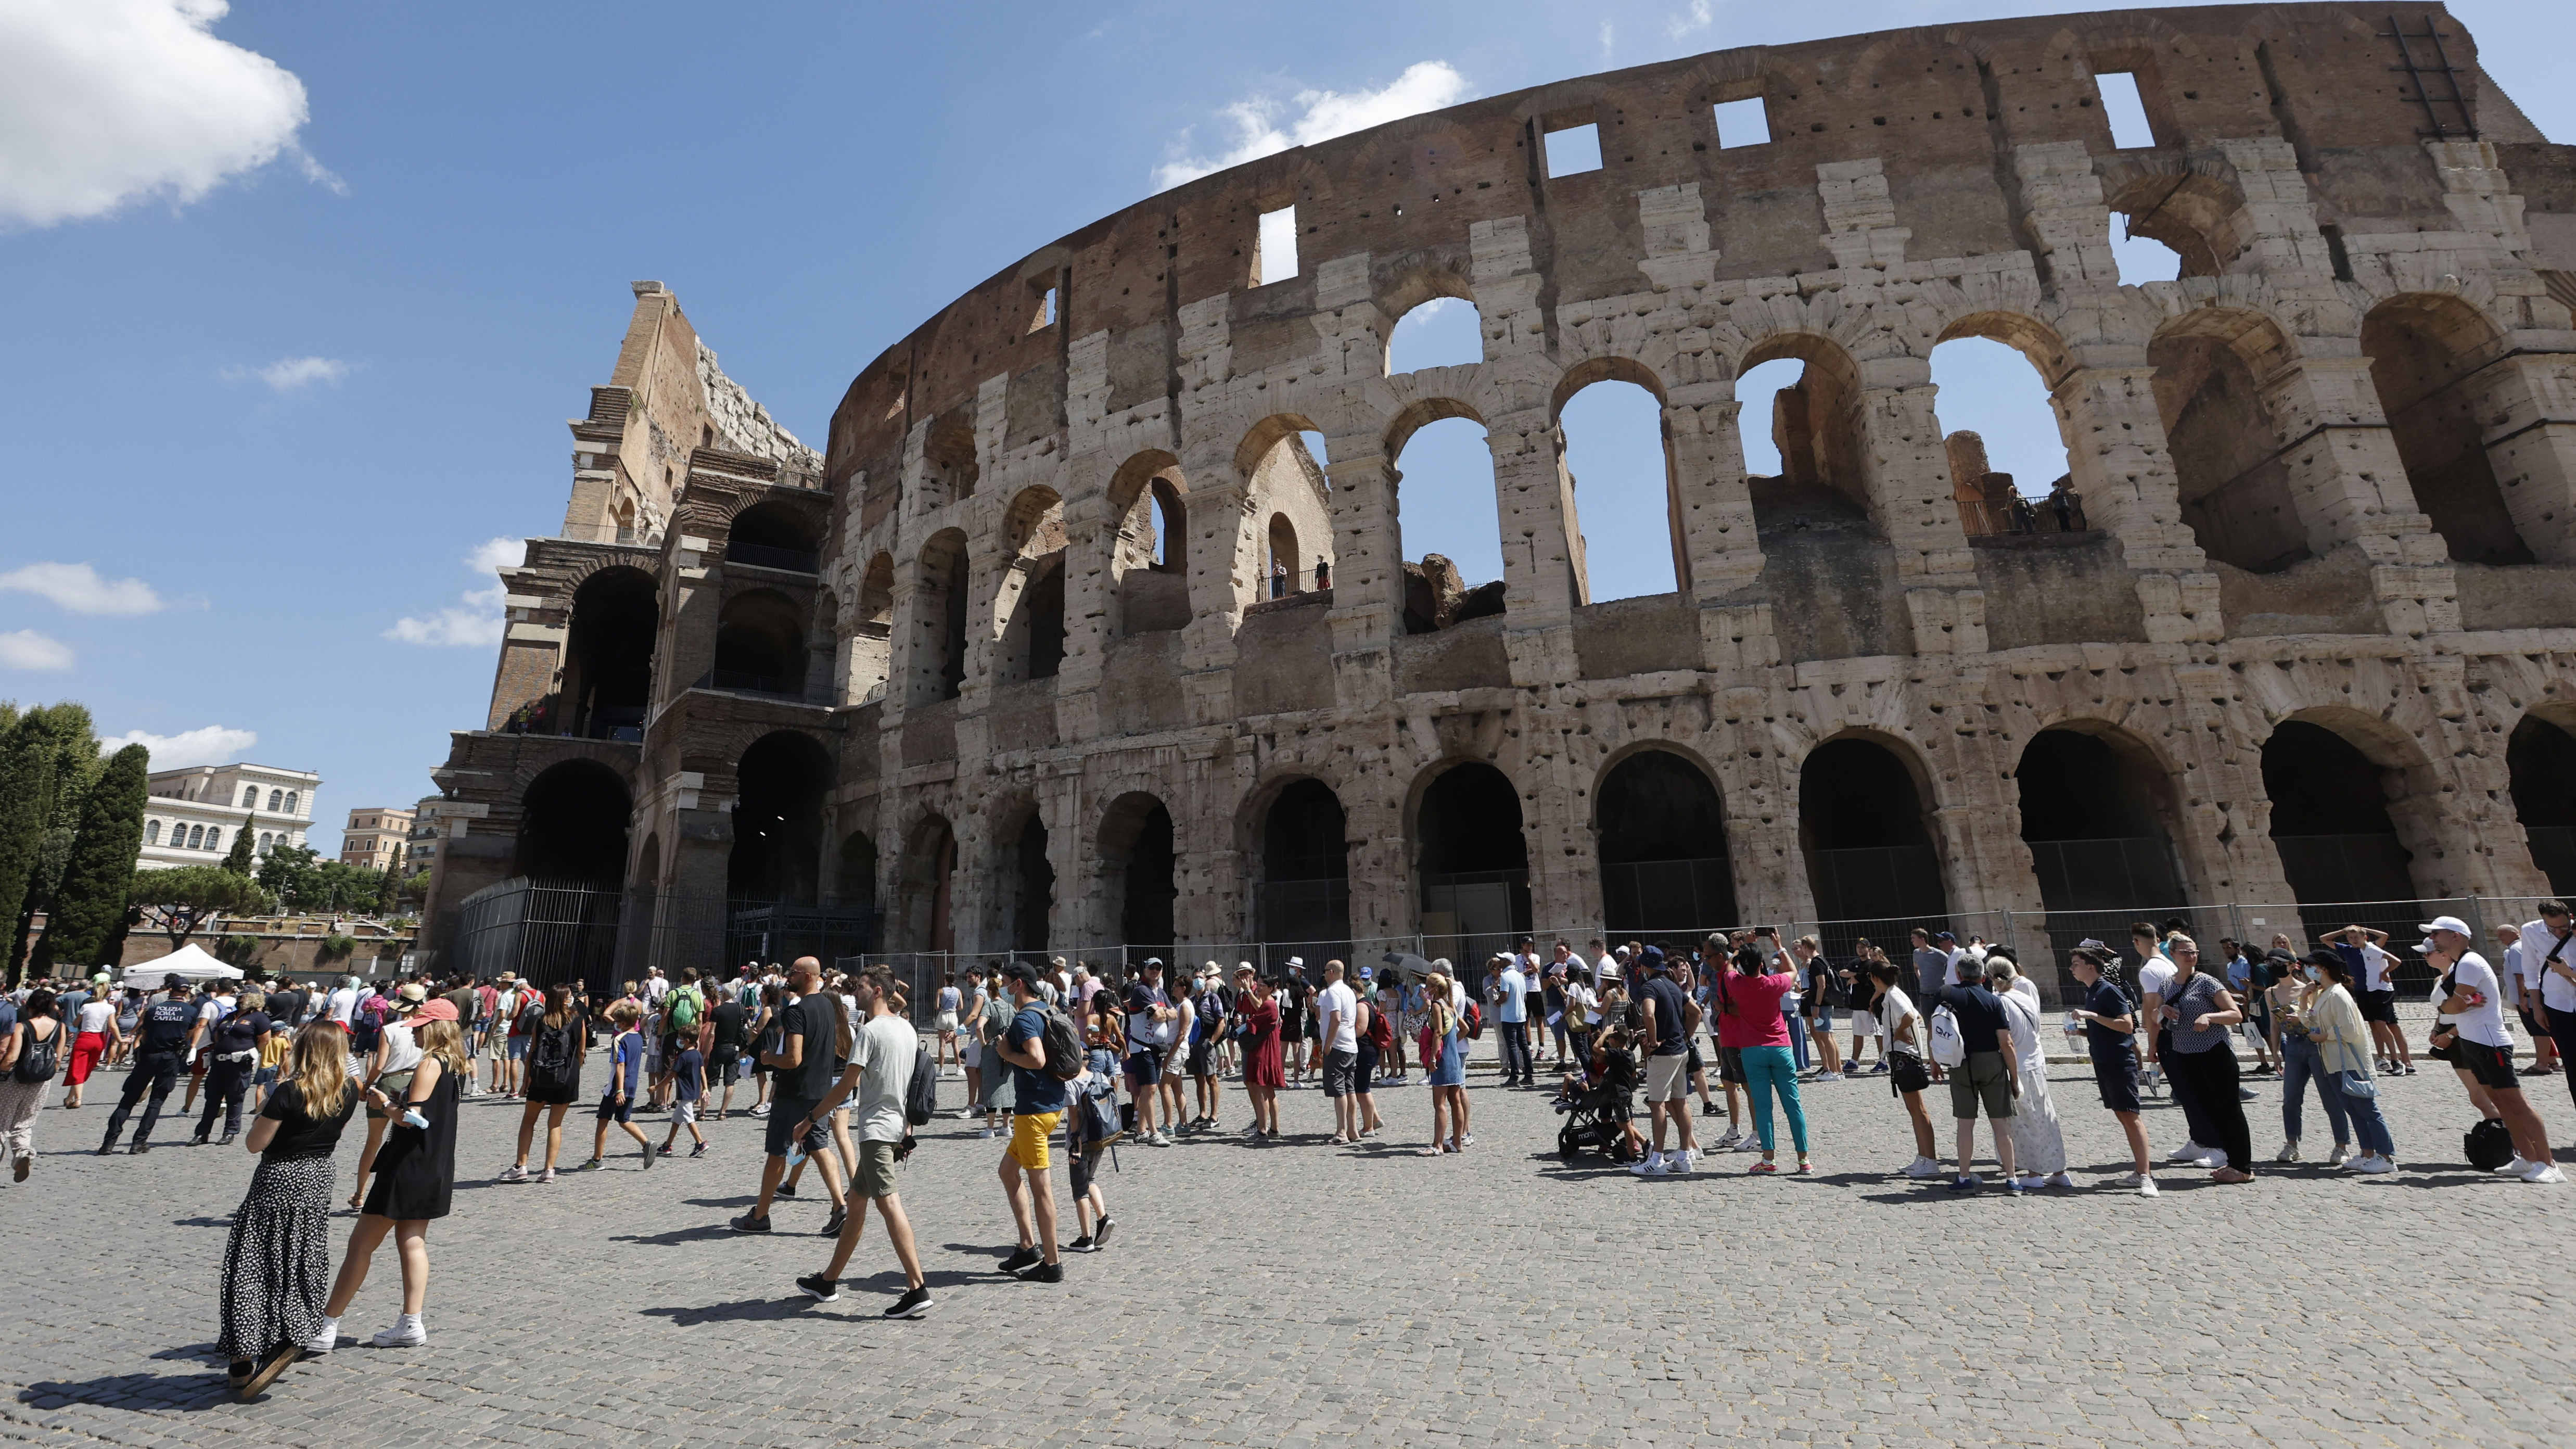 Tourists wait in a queue to enter the Colosseum in Rome, Italy.